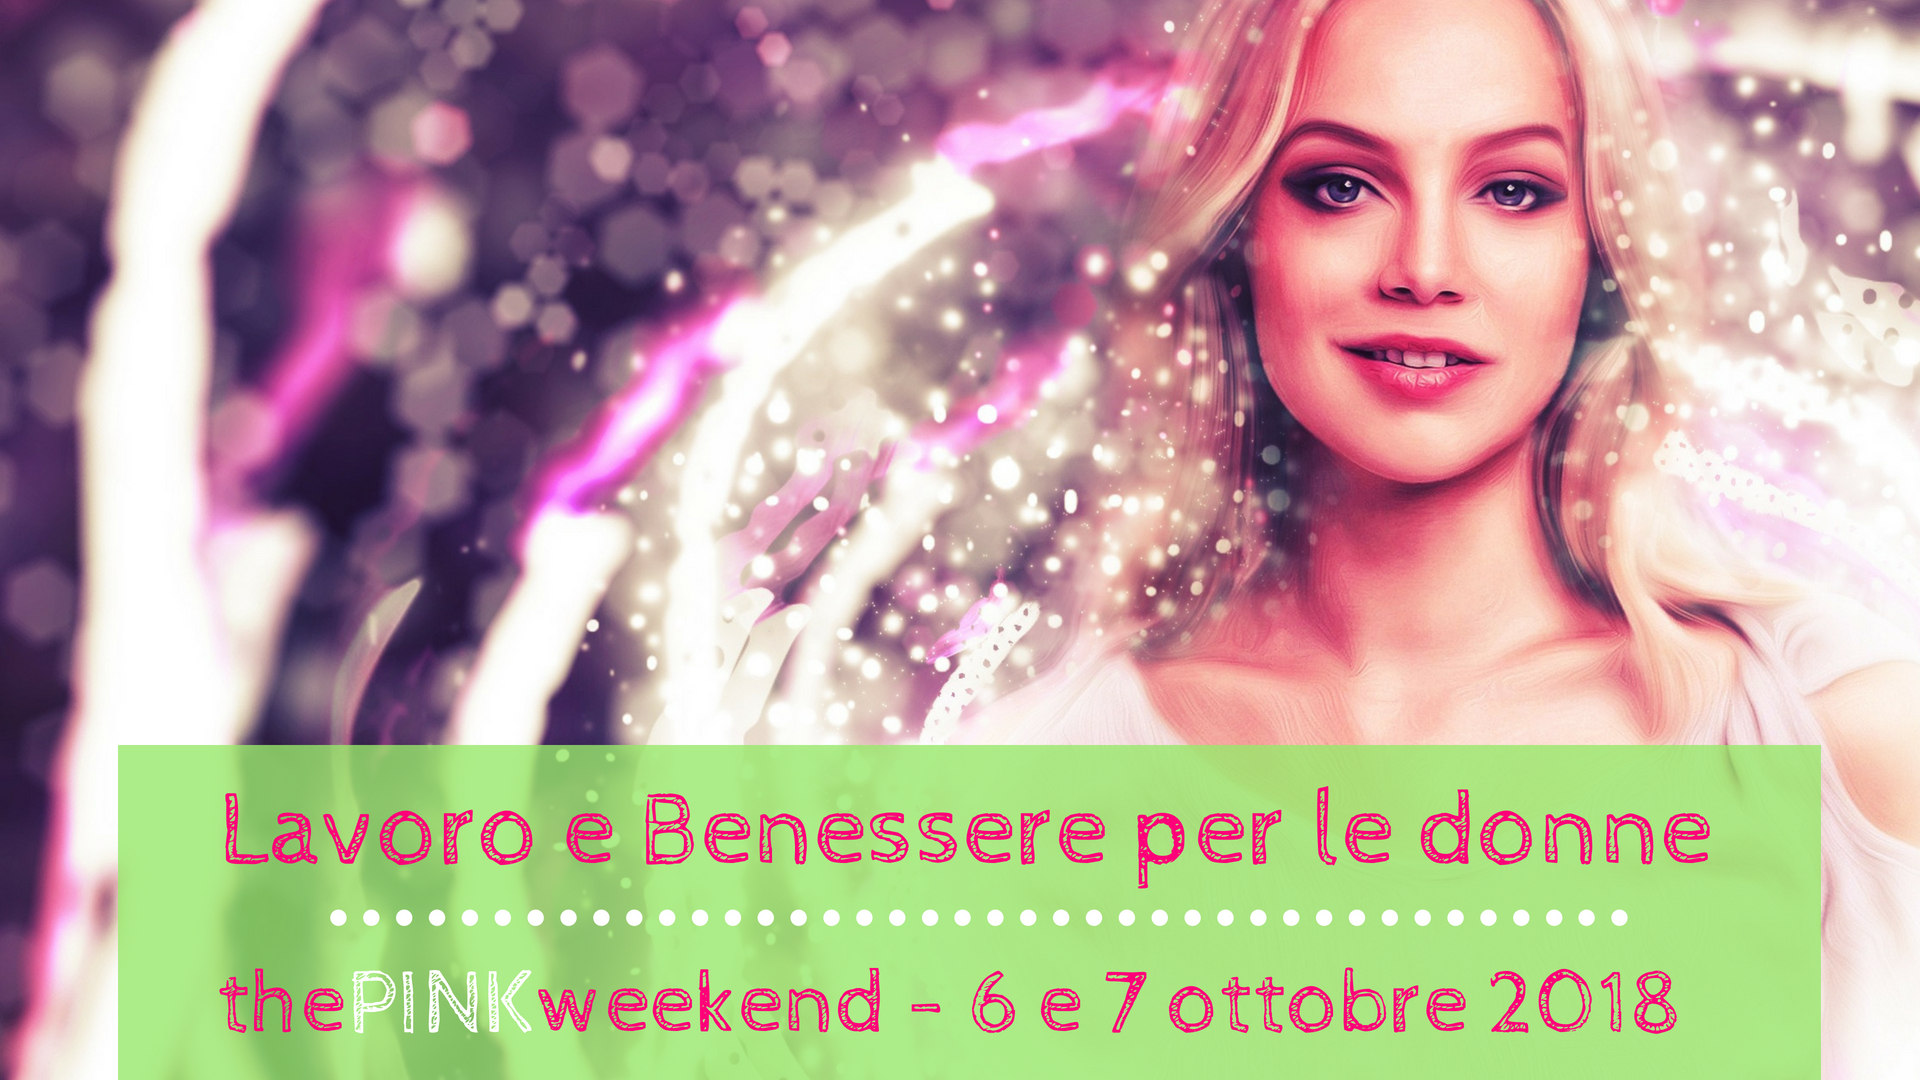 thePINKweekend – Lavoro e Benessere per le donne